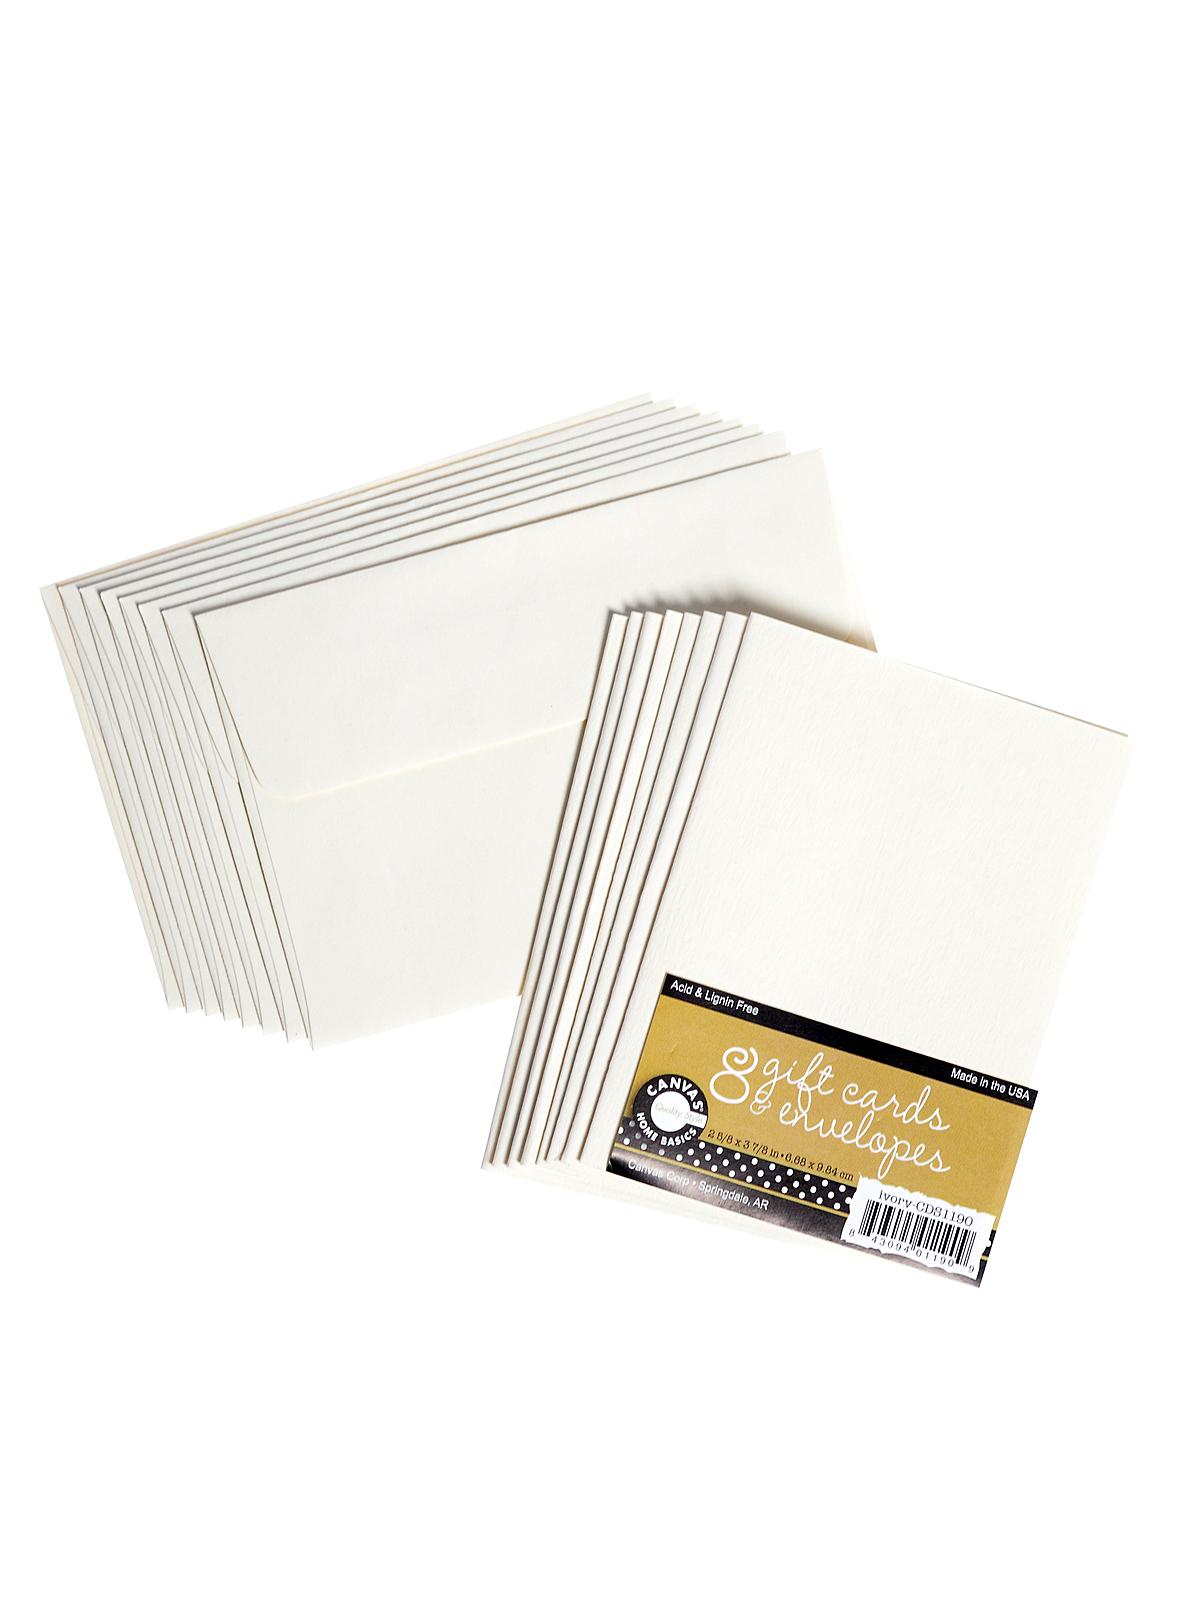 Packaged Cards And Envelopes Gift Cards With Envelopes Ivory 2 1 2 In. X 3 1 2 In. Pack Of 8